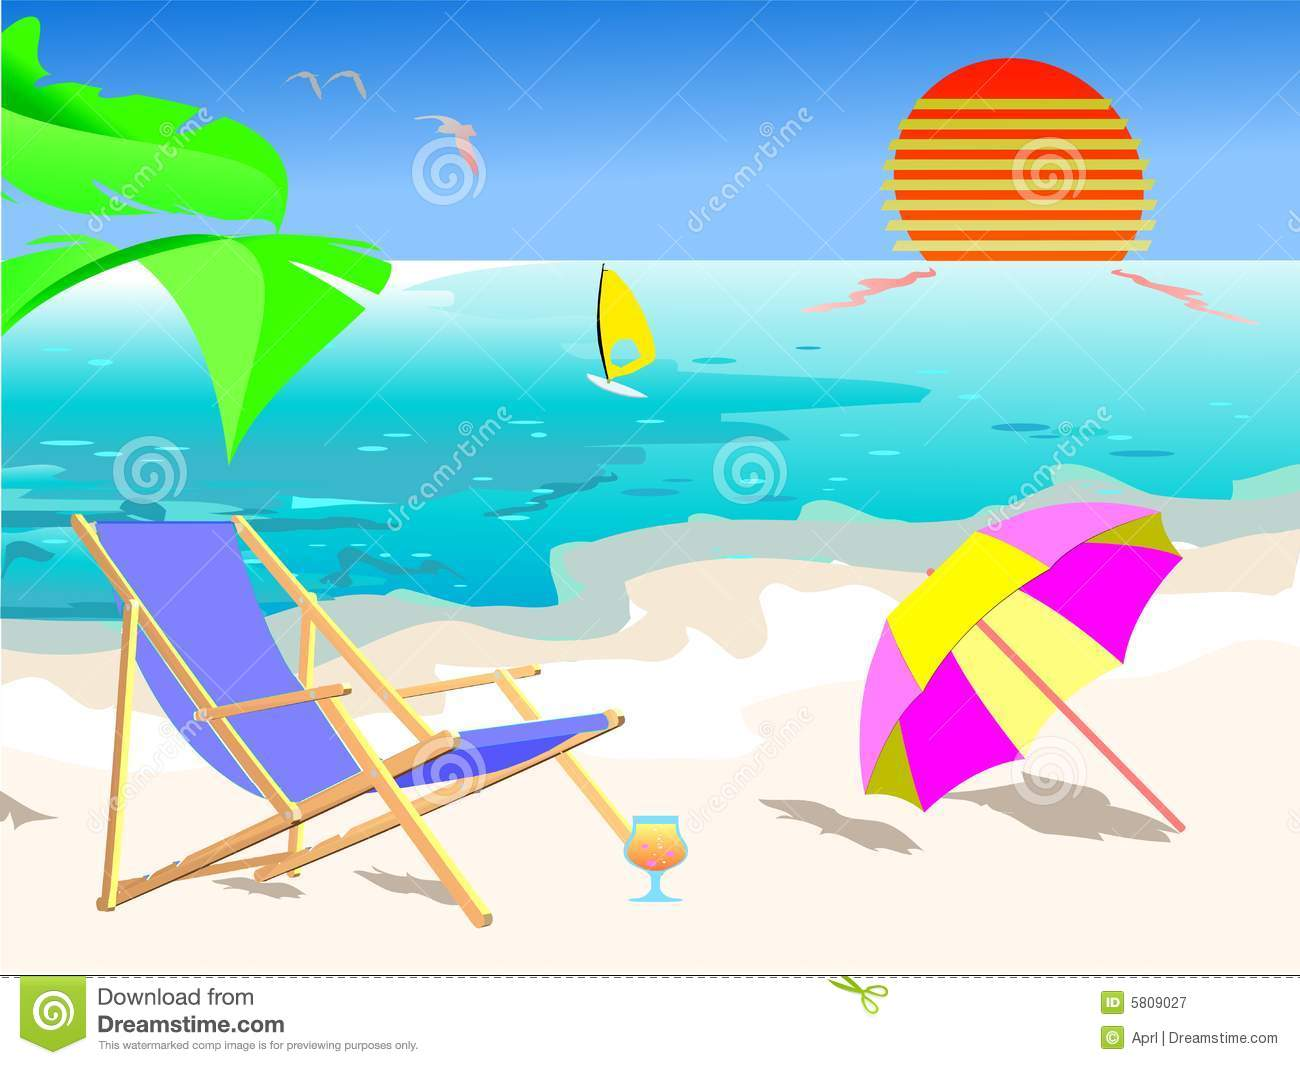 Summer beach scene clipart.